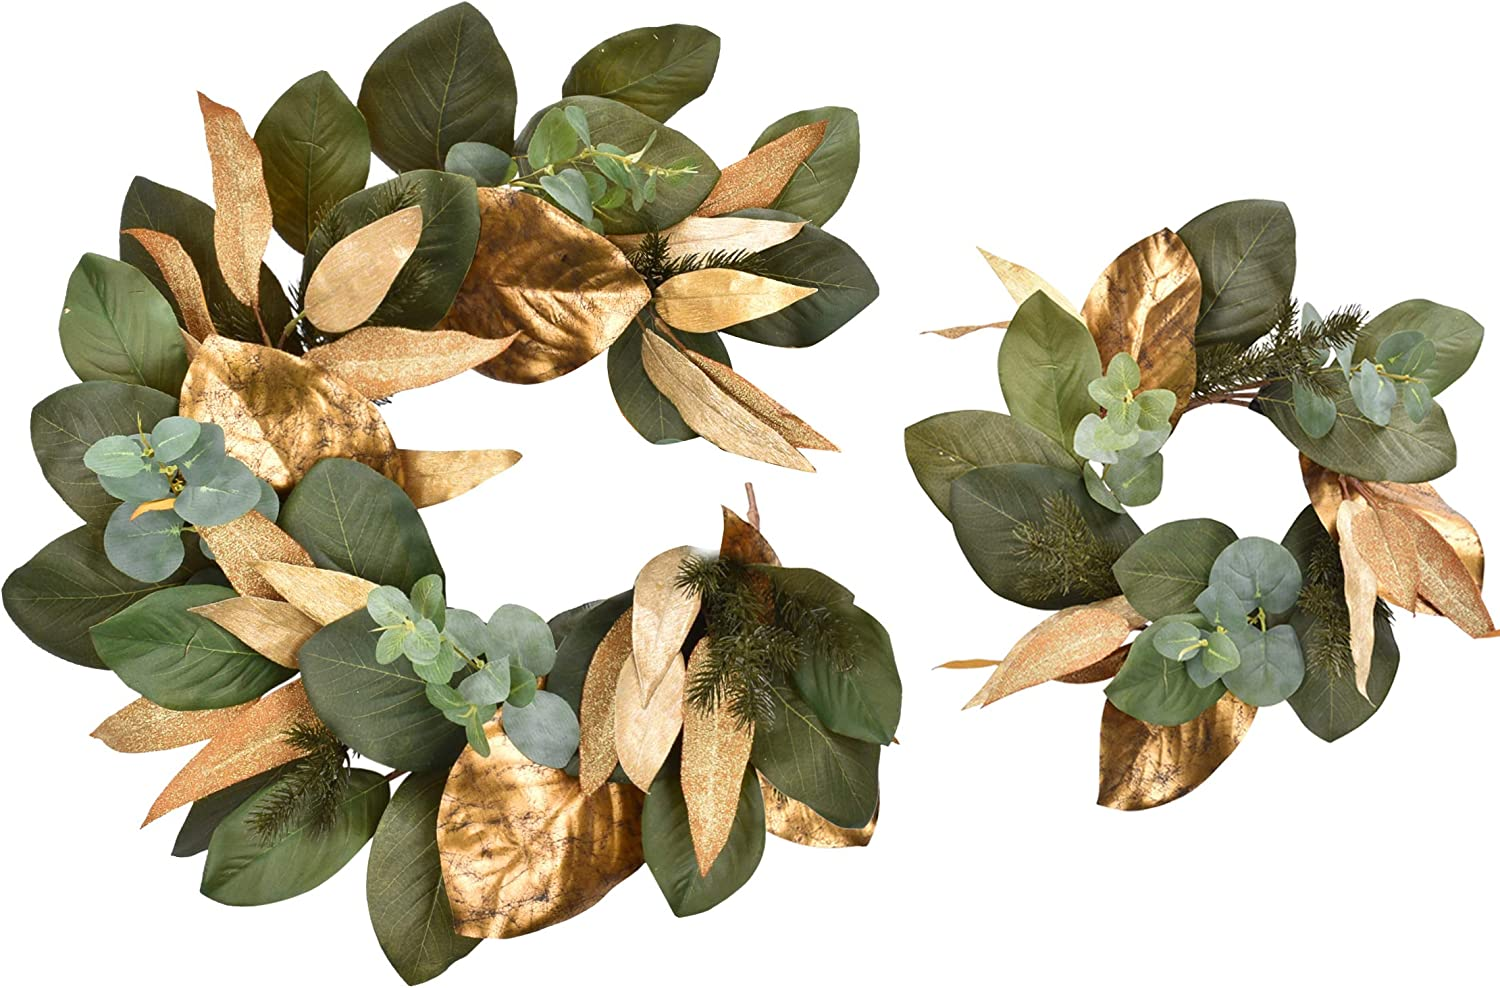 Cloris Art Christmas Wreaths for Indoors Front Door 16 Inch Eucalyptus & Magnolia Leaves + Pine Needle 4 ft Garland(DIY) for Farmhouse Home Wedding Party Wall Decor(Gold & Green)